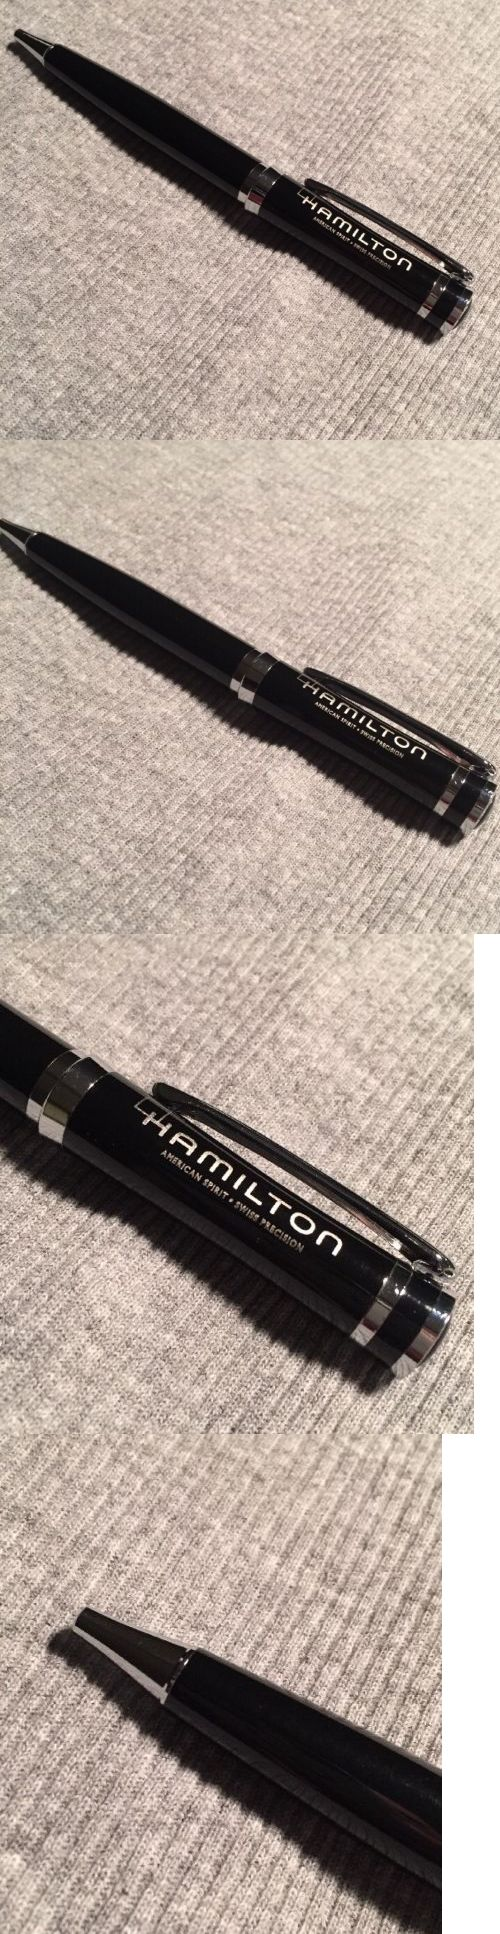 Other Watches 166739: Hamilton Watch Company Dealer Ballpoint Pen Black And Chrome Brand New -> BUY IT NOW ONLY: $43.5 on eBay!